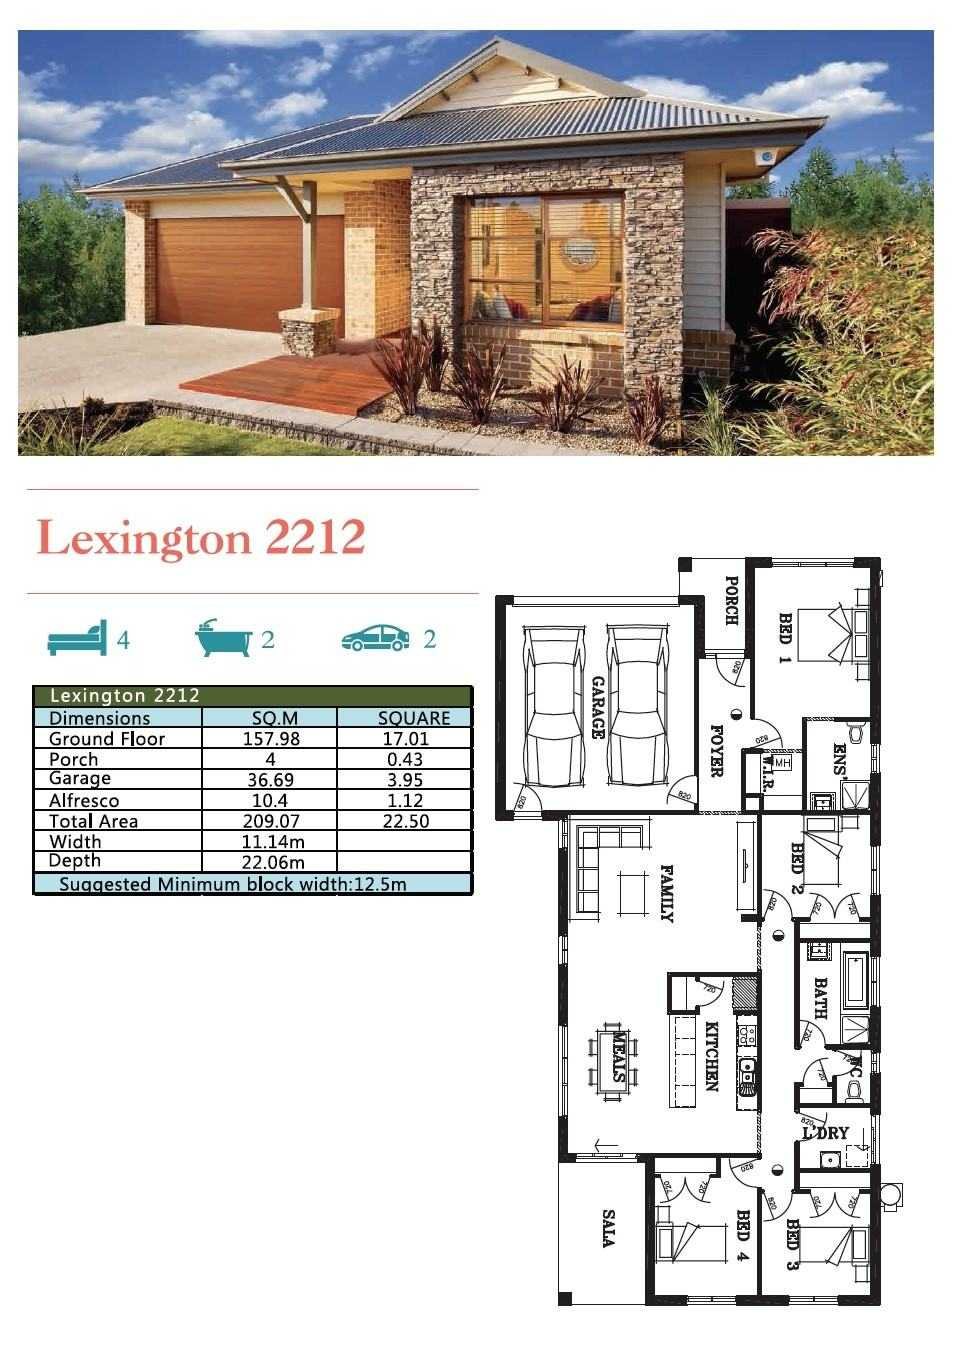 Lexington-2212-Floor-Plan